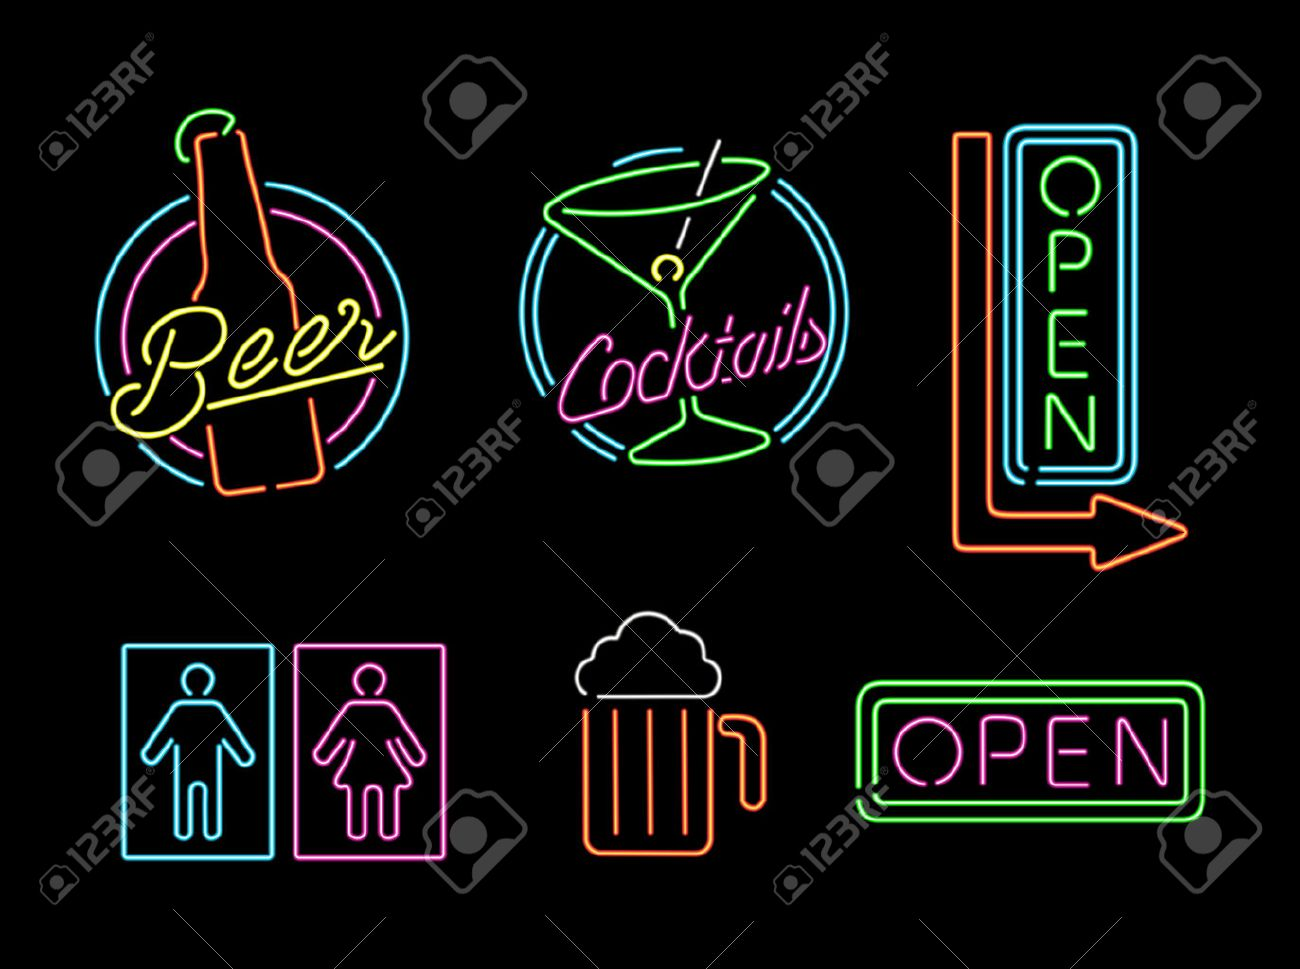 393123 bar cliparts stock vector and royalty free bar illustrations set of retro style neon light outline sign icons for bar beer open business aloadofball Image collections